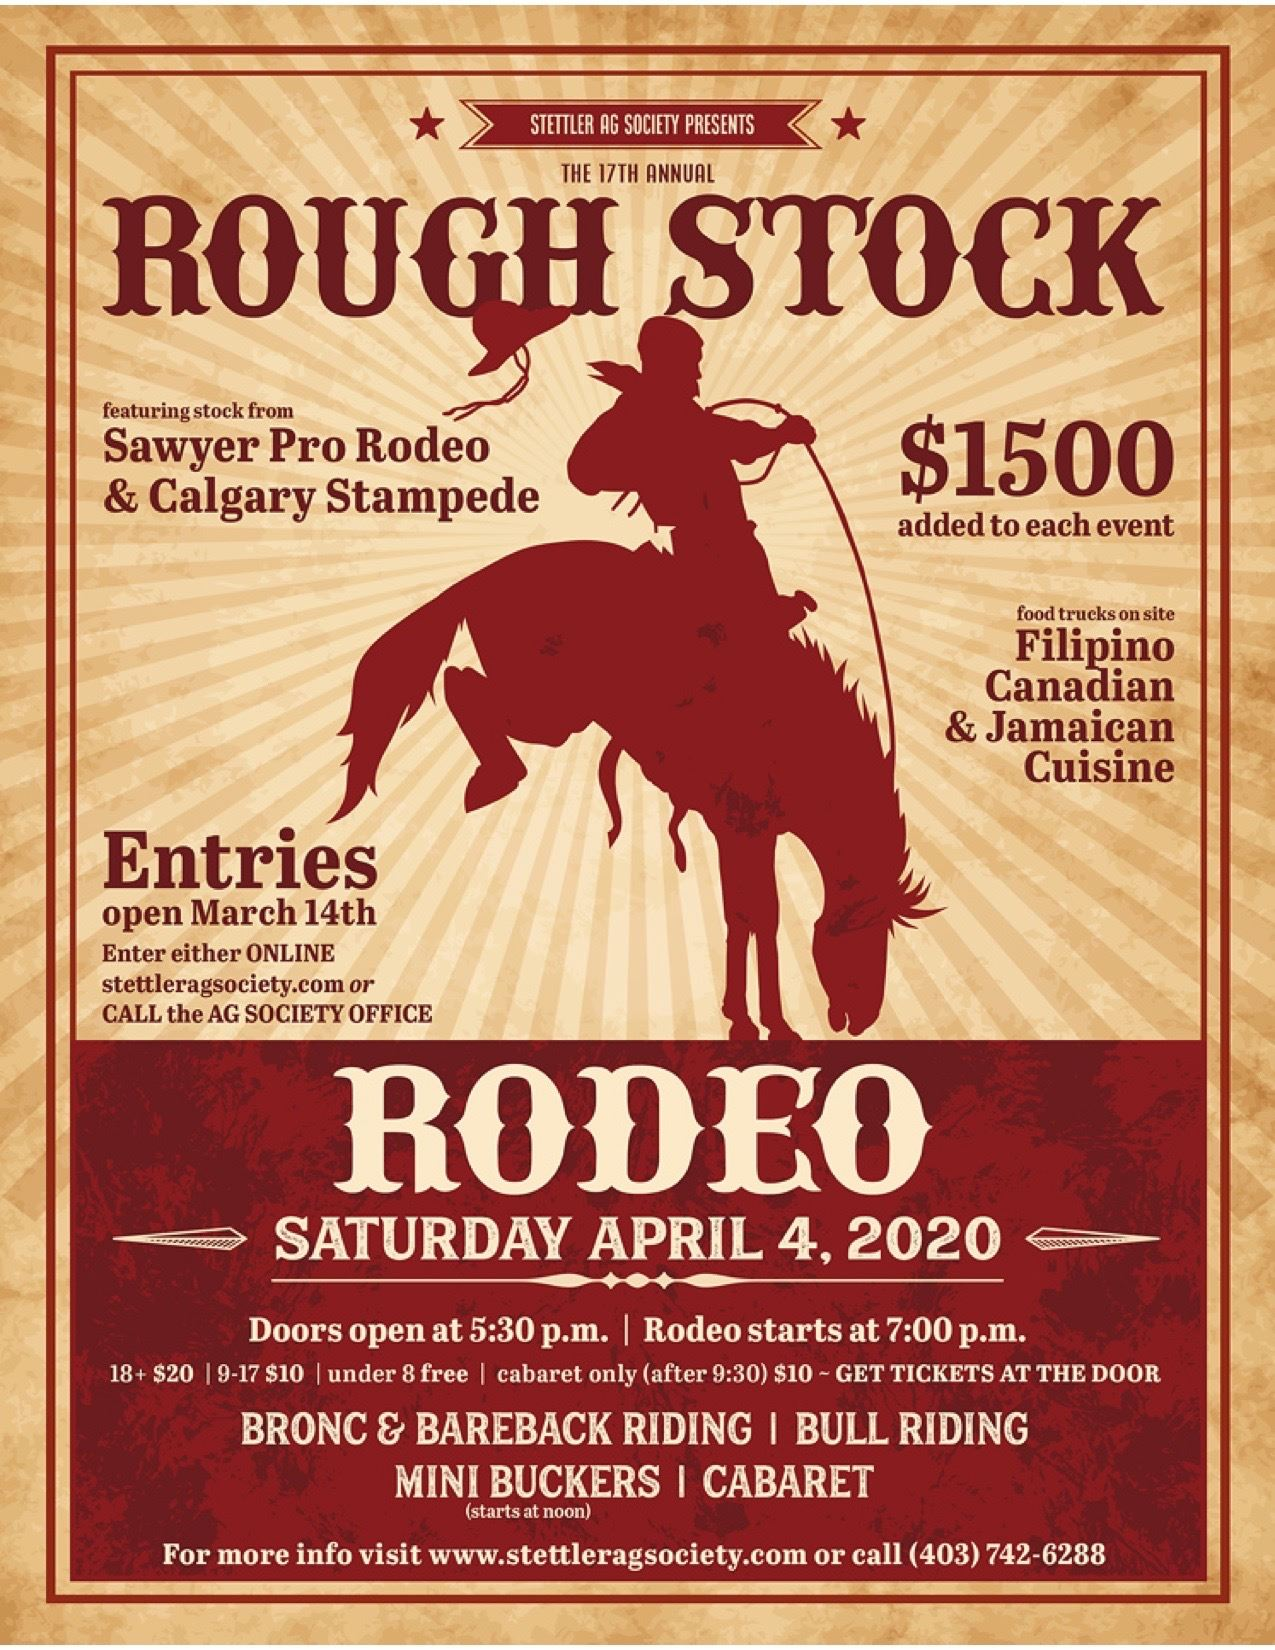 roughstock rodeo